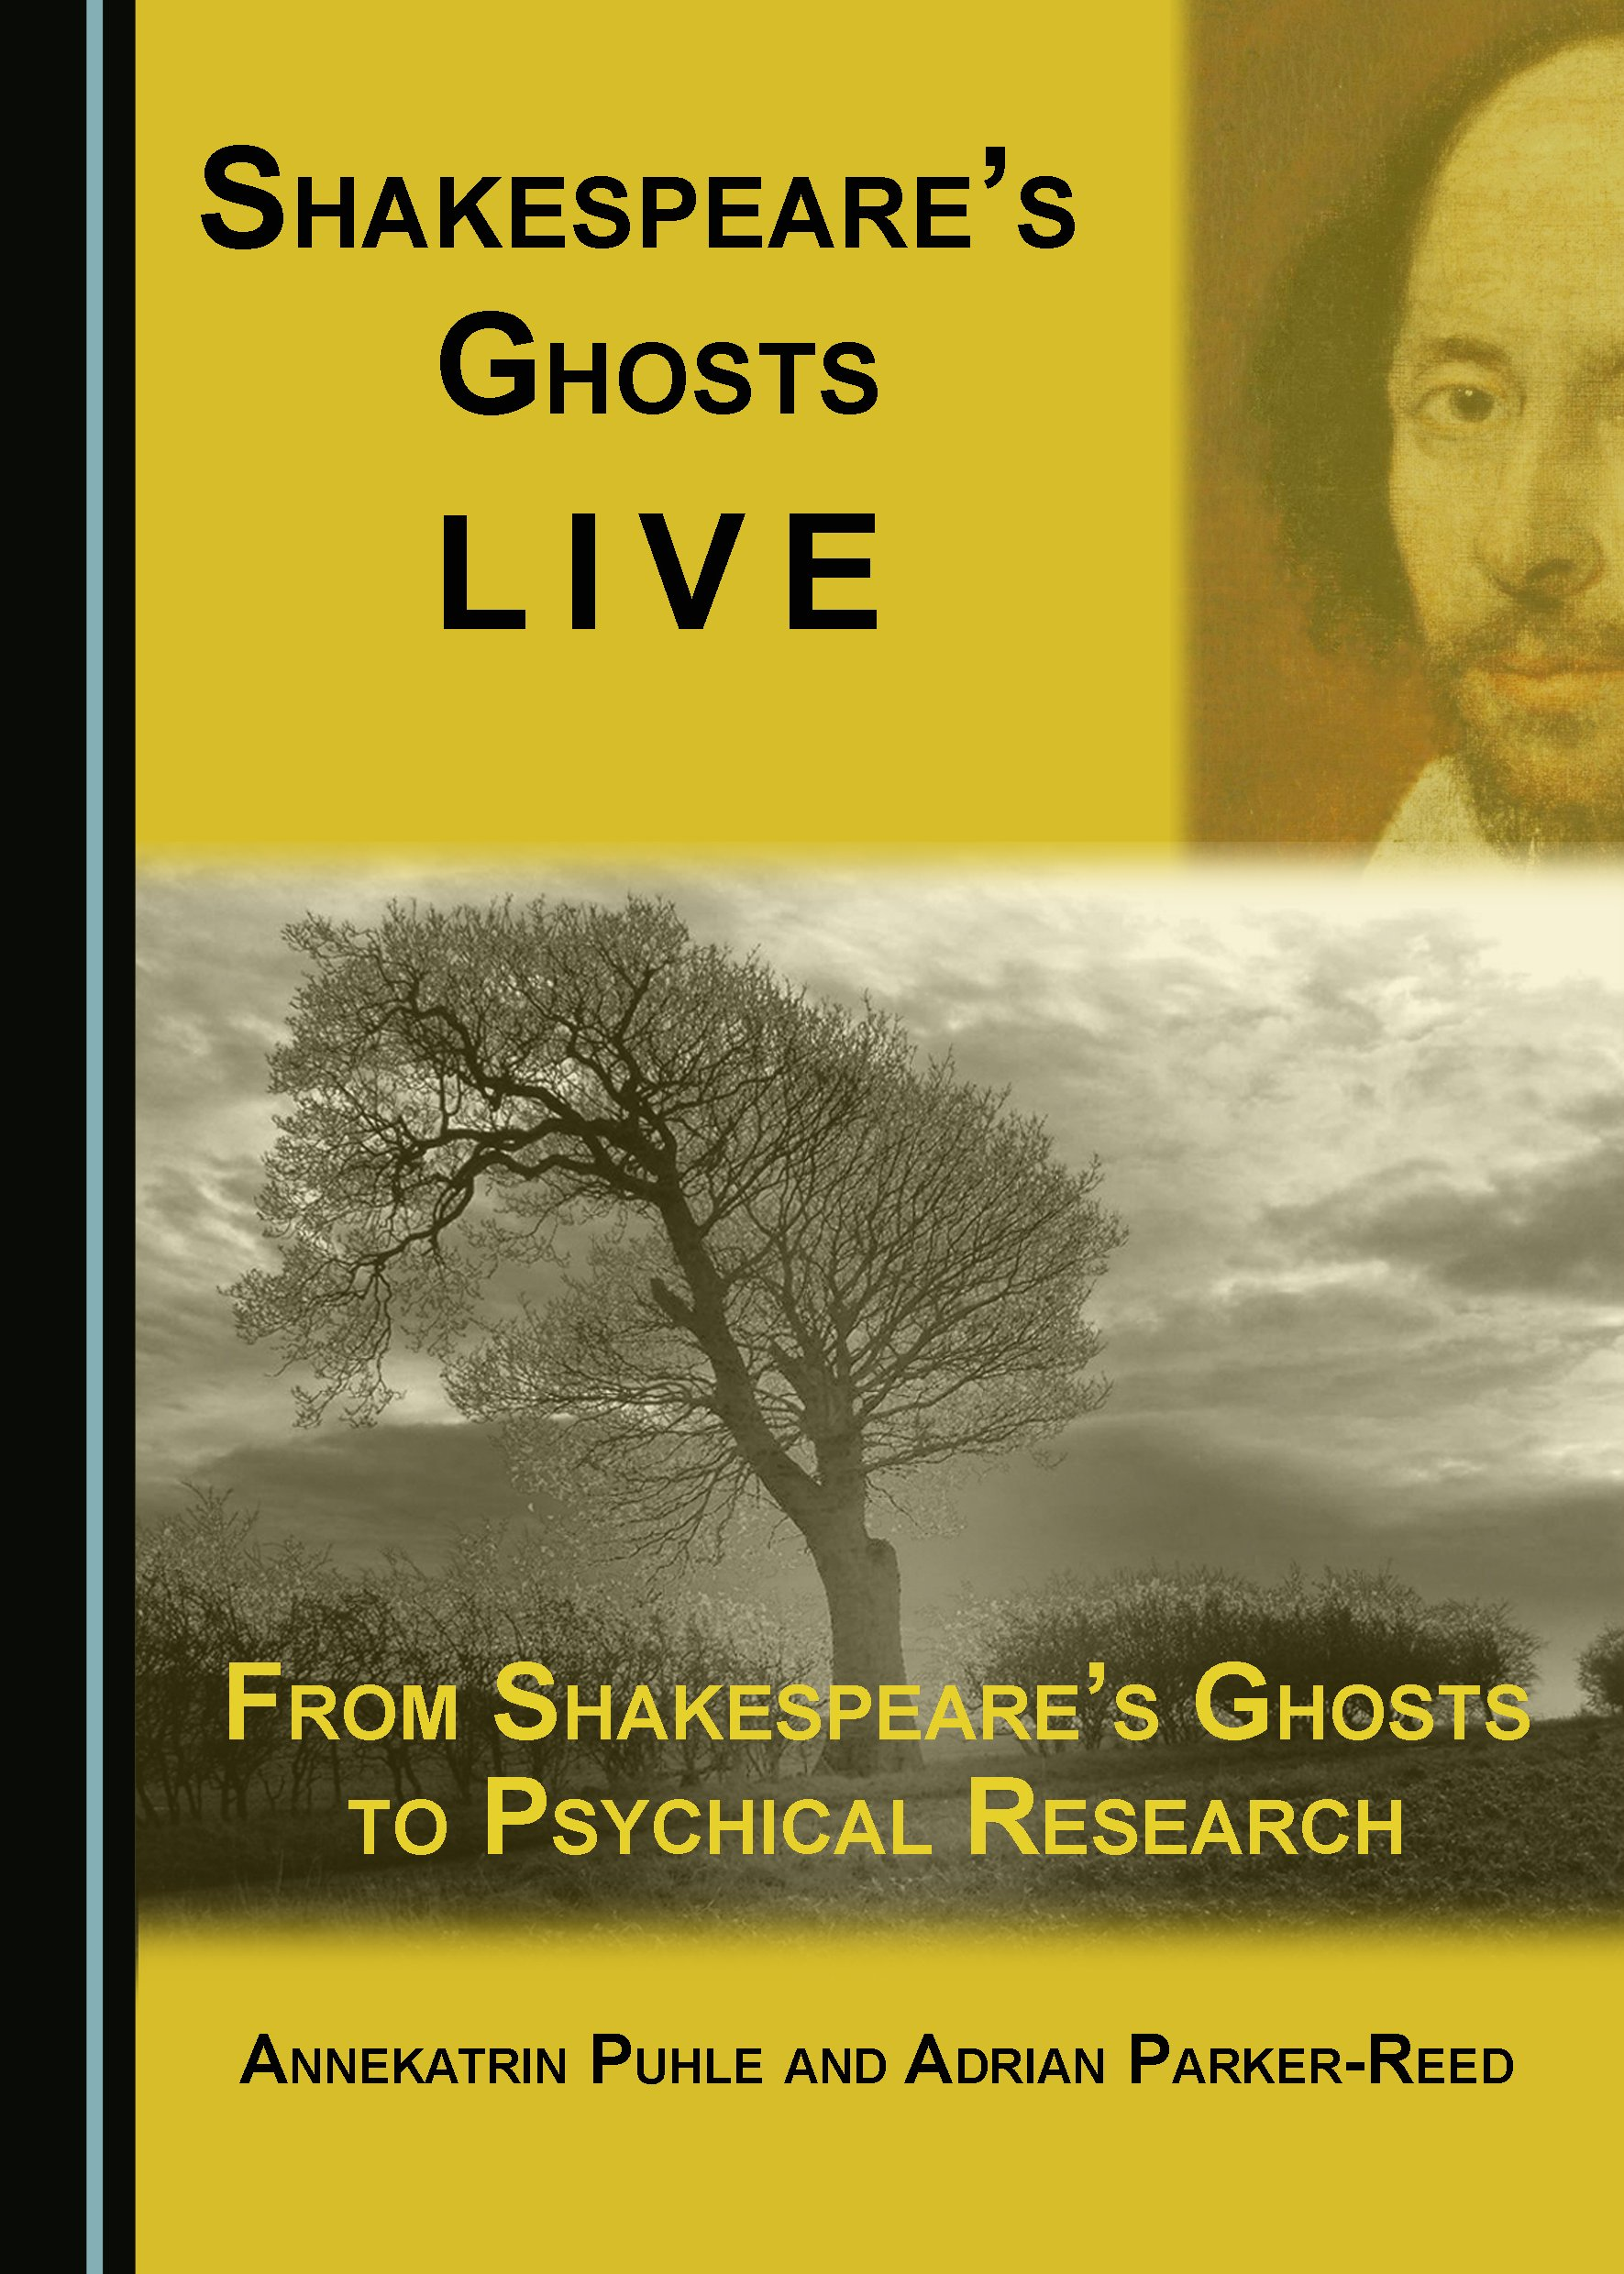 Shakespeare's Ghosts Live: From Shakespeare's Ghosts to Psychical Research